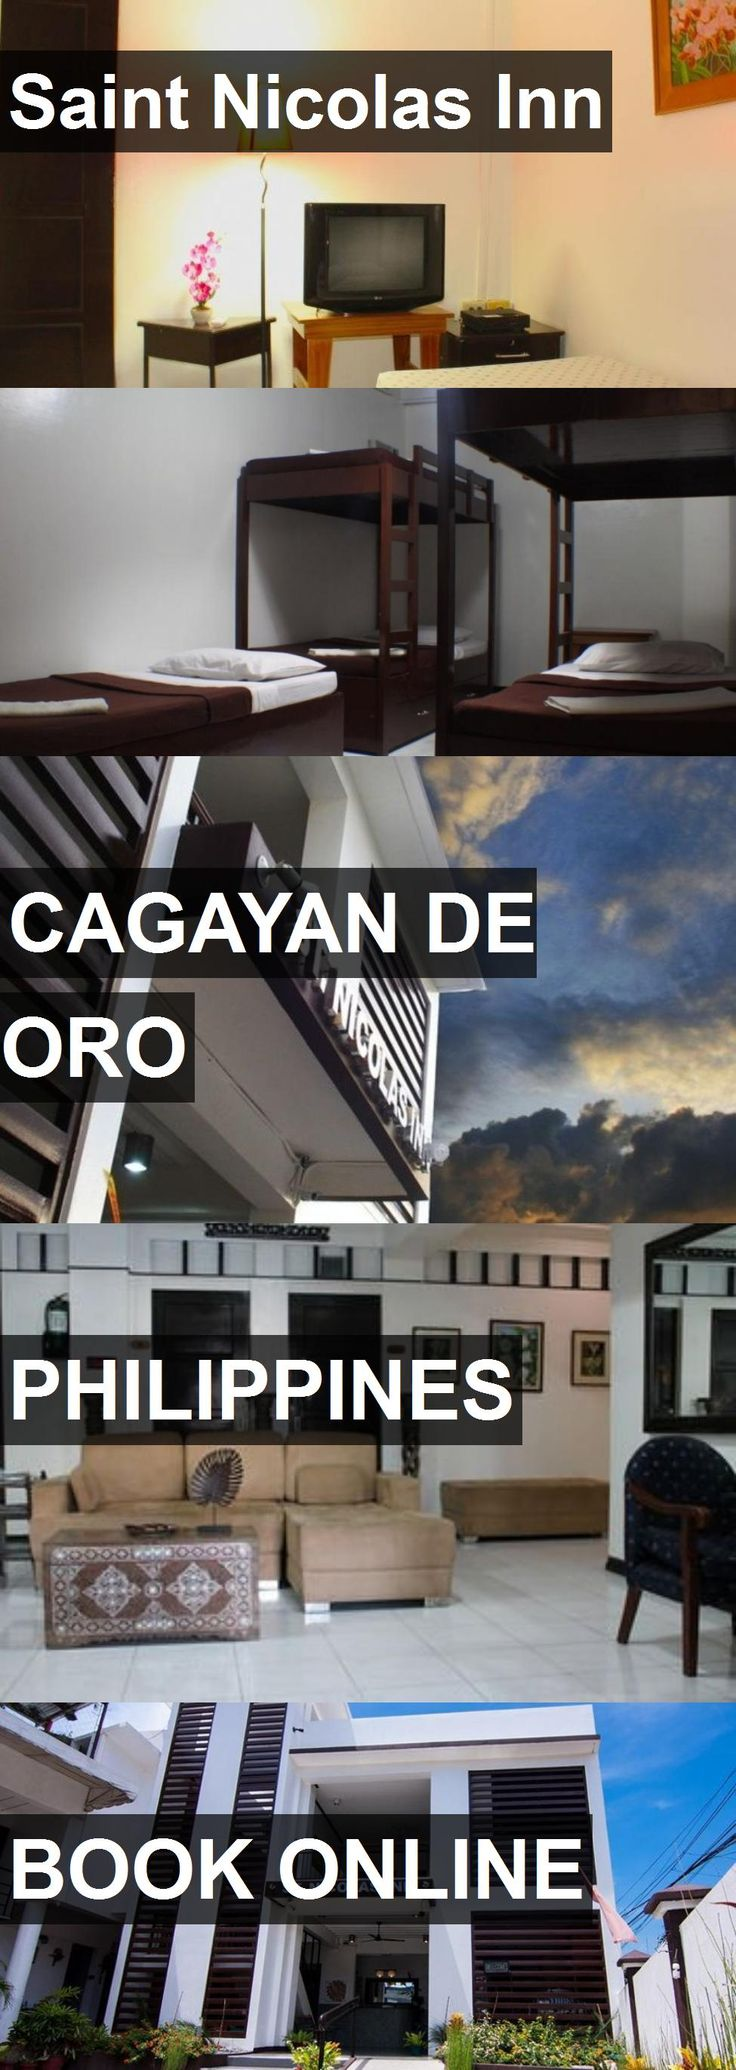 Hotel Saint Nicolas Inn in Cagayan de Oro, Philippines. For more information, photos, reviews and best prices please follow the link. #Philippines #CagayandeOro #travel #vacation #hotel